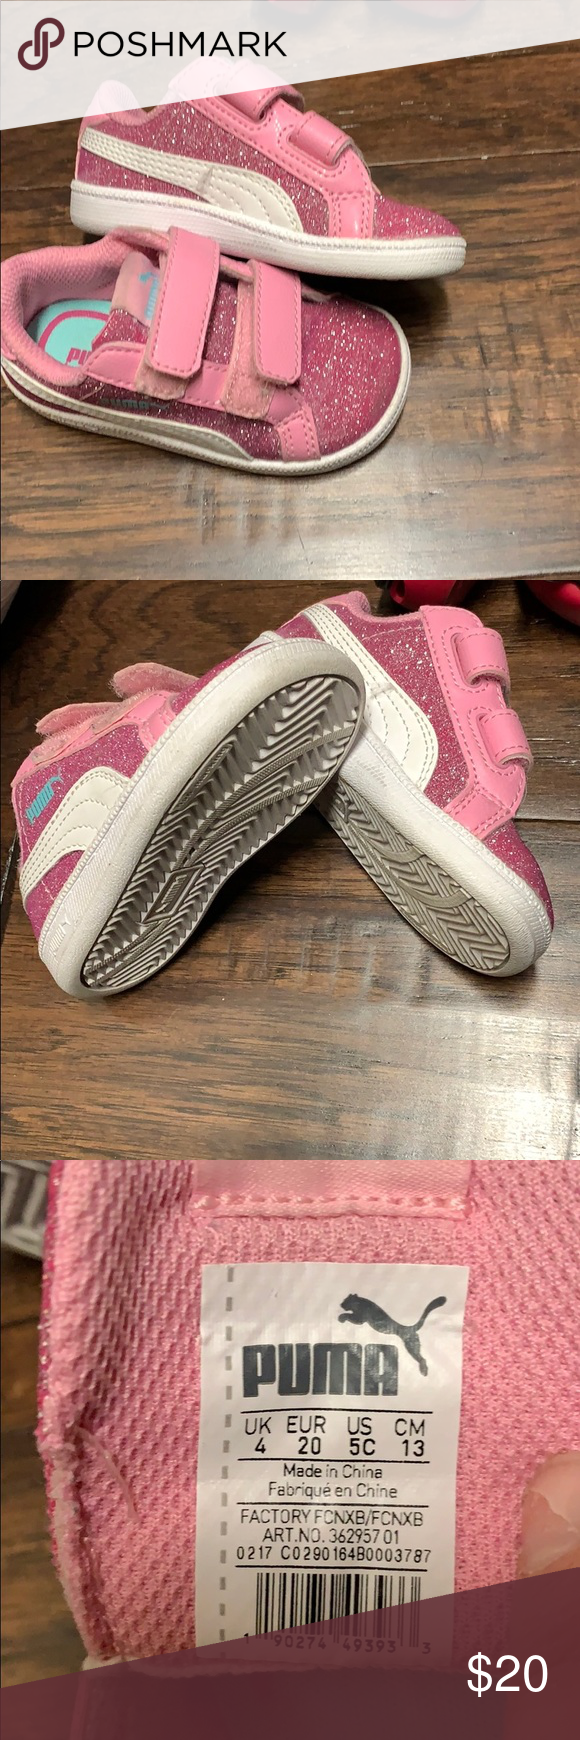 Are Girls Few Sneaker AdorableWorn TimesMy Daughter These A Puma 3j5ALq4Rc